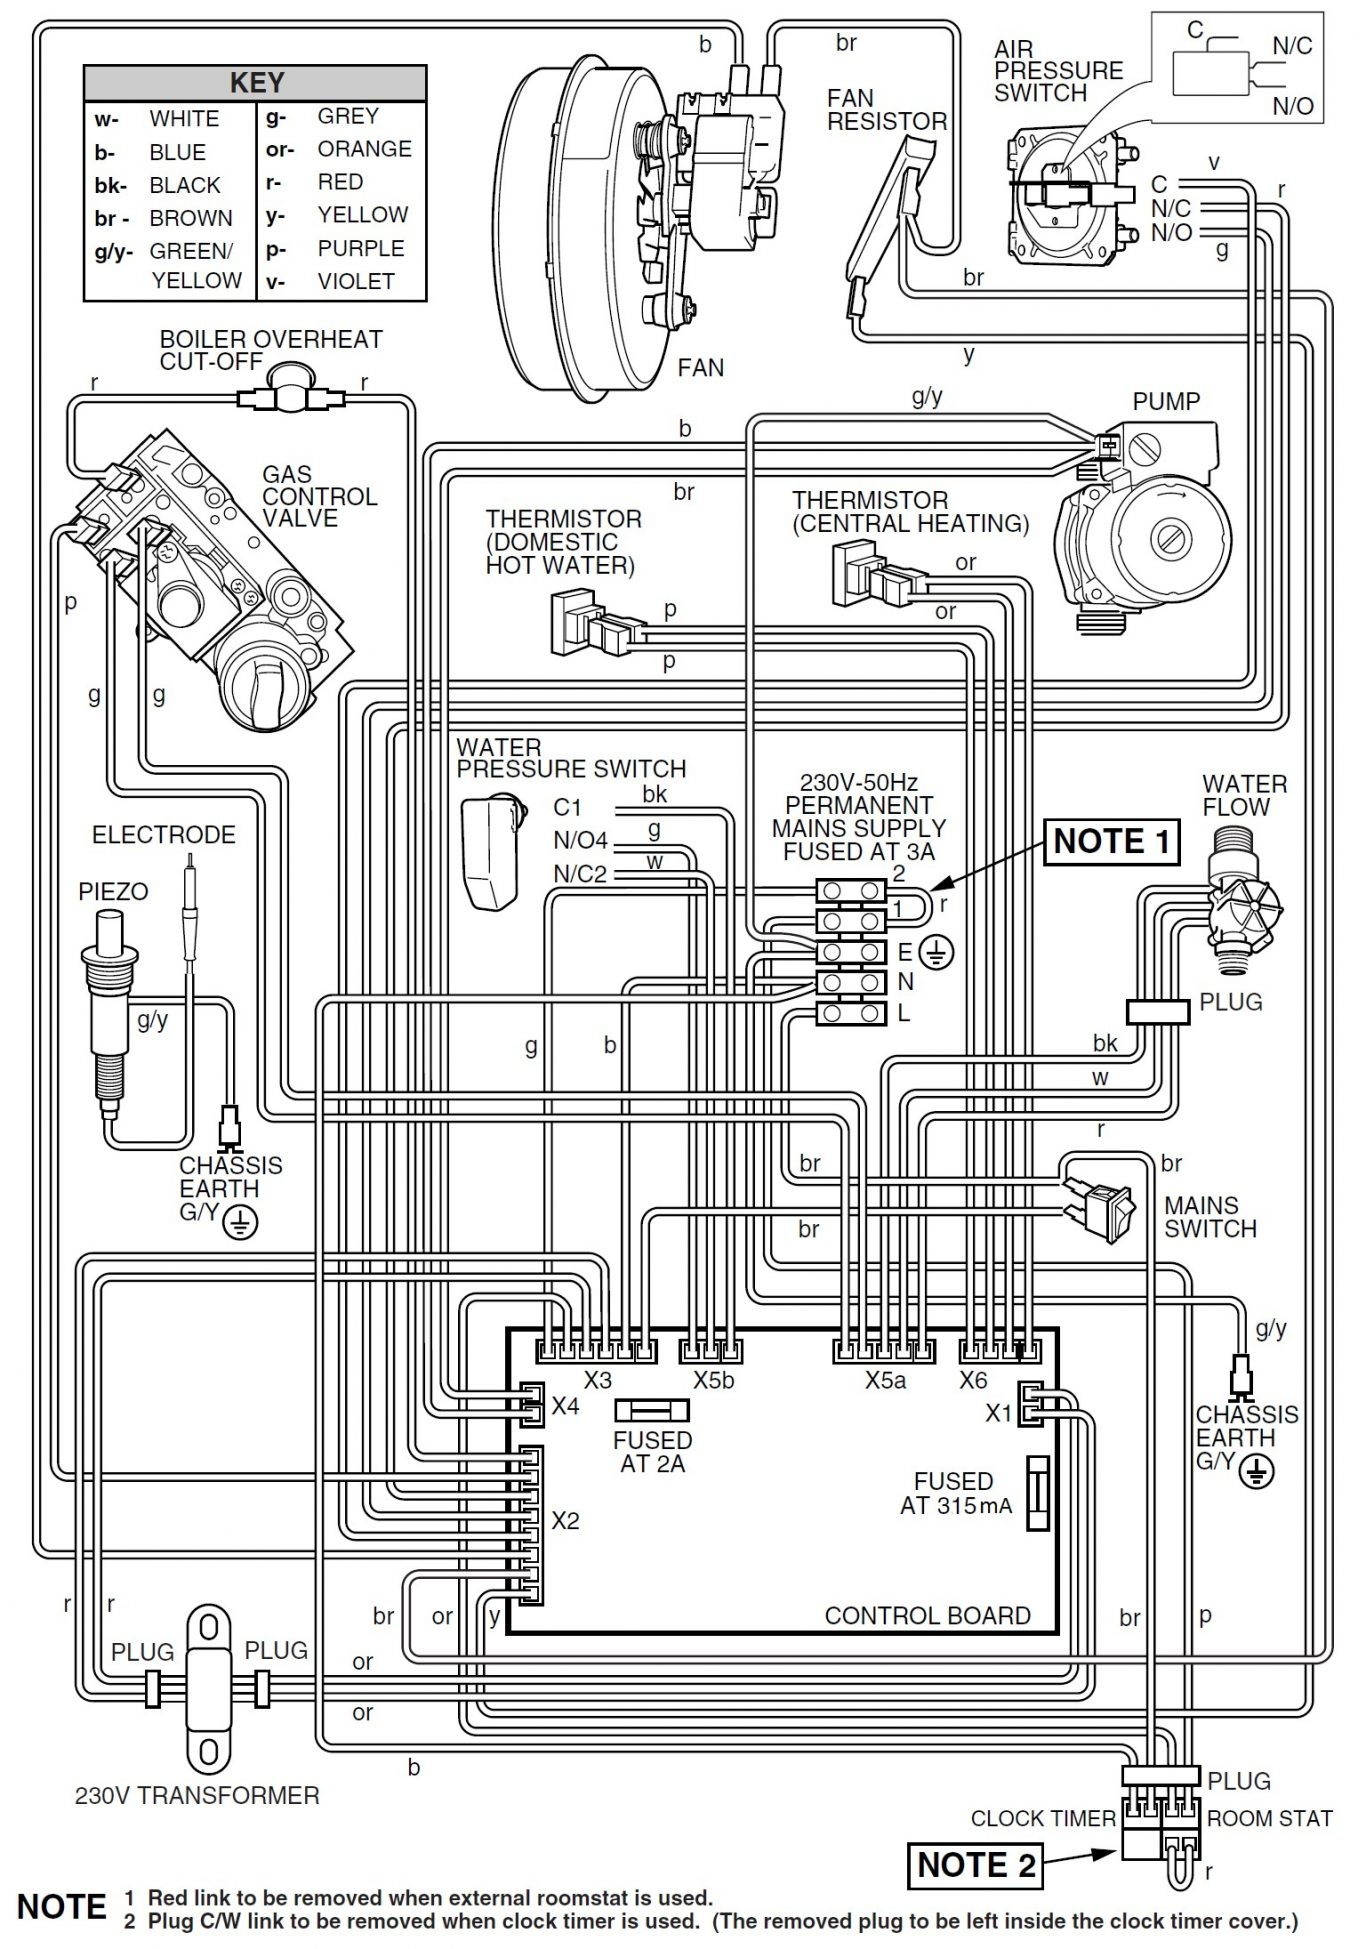 beckett oil furnace wiring diagram | free wiring diagram oil furnace wiring diagram older furnace